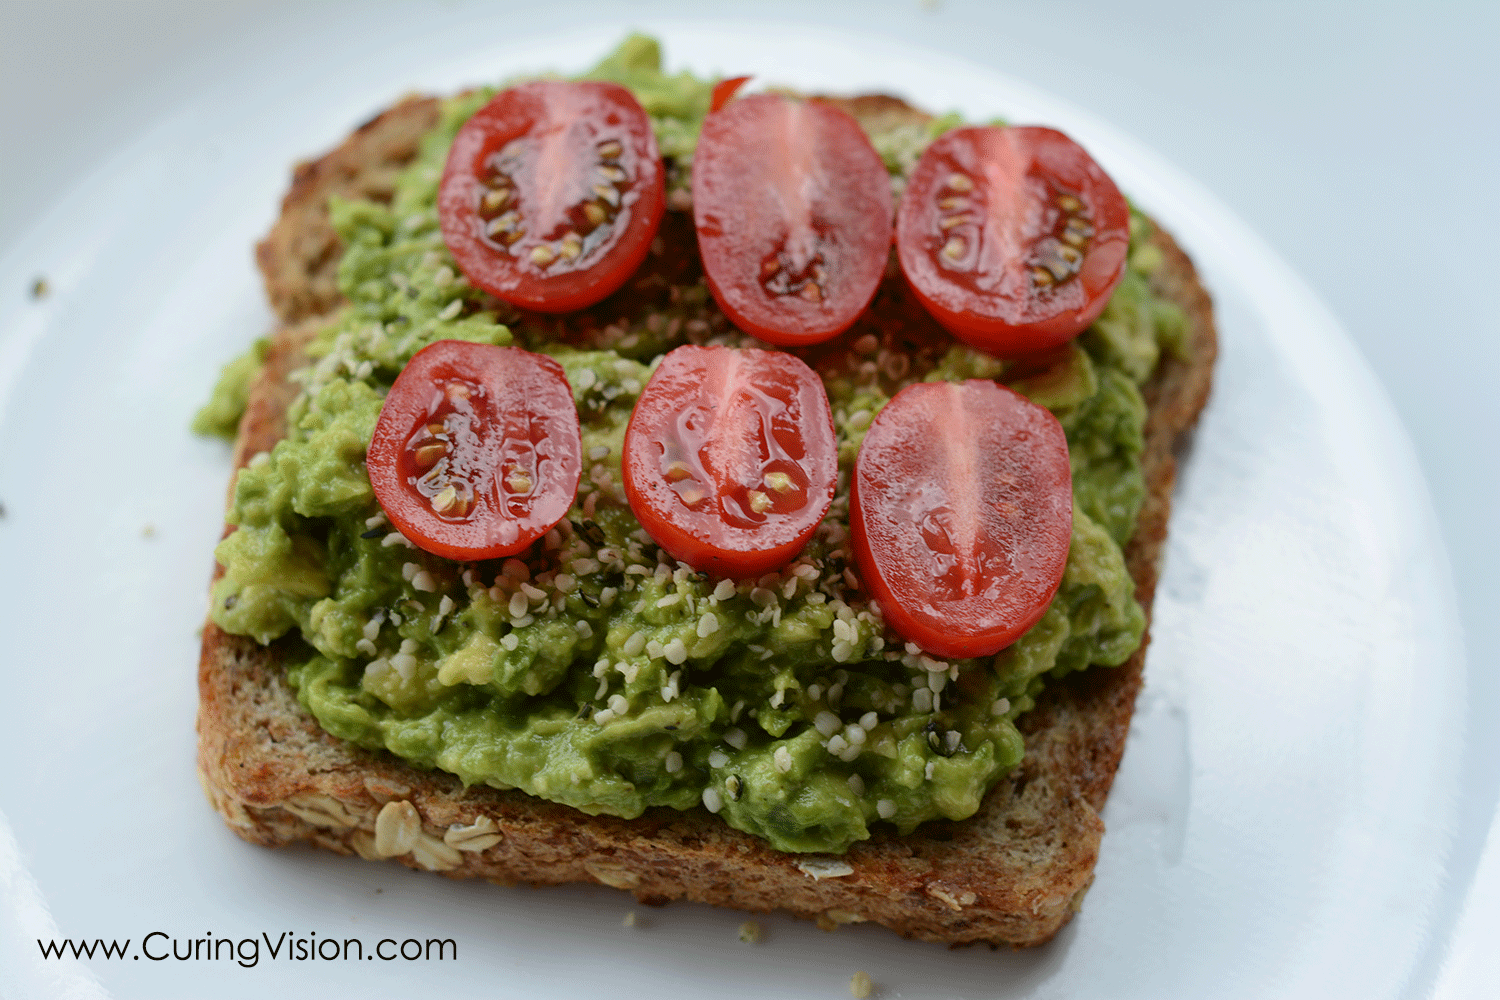 HAT Toast - Hemp Avocado Tomato. This is a complete family approved meal for the Alkaline Diet, Vegan, Whole Foods. We all love the classic BLT sandwich, this is a new healthy twist and fun name! #alkalinediet #avocado #avocadotoast #wholefoods #kroger #familymeal #kidapproved #easydinner #quicklunch